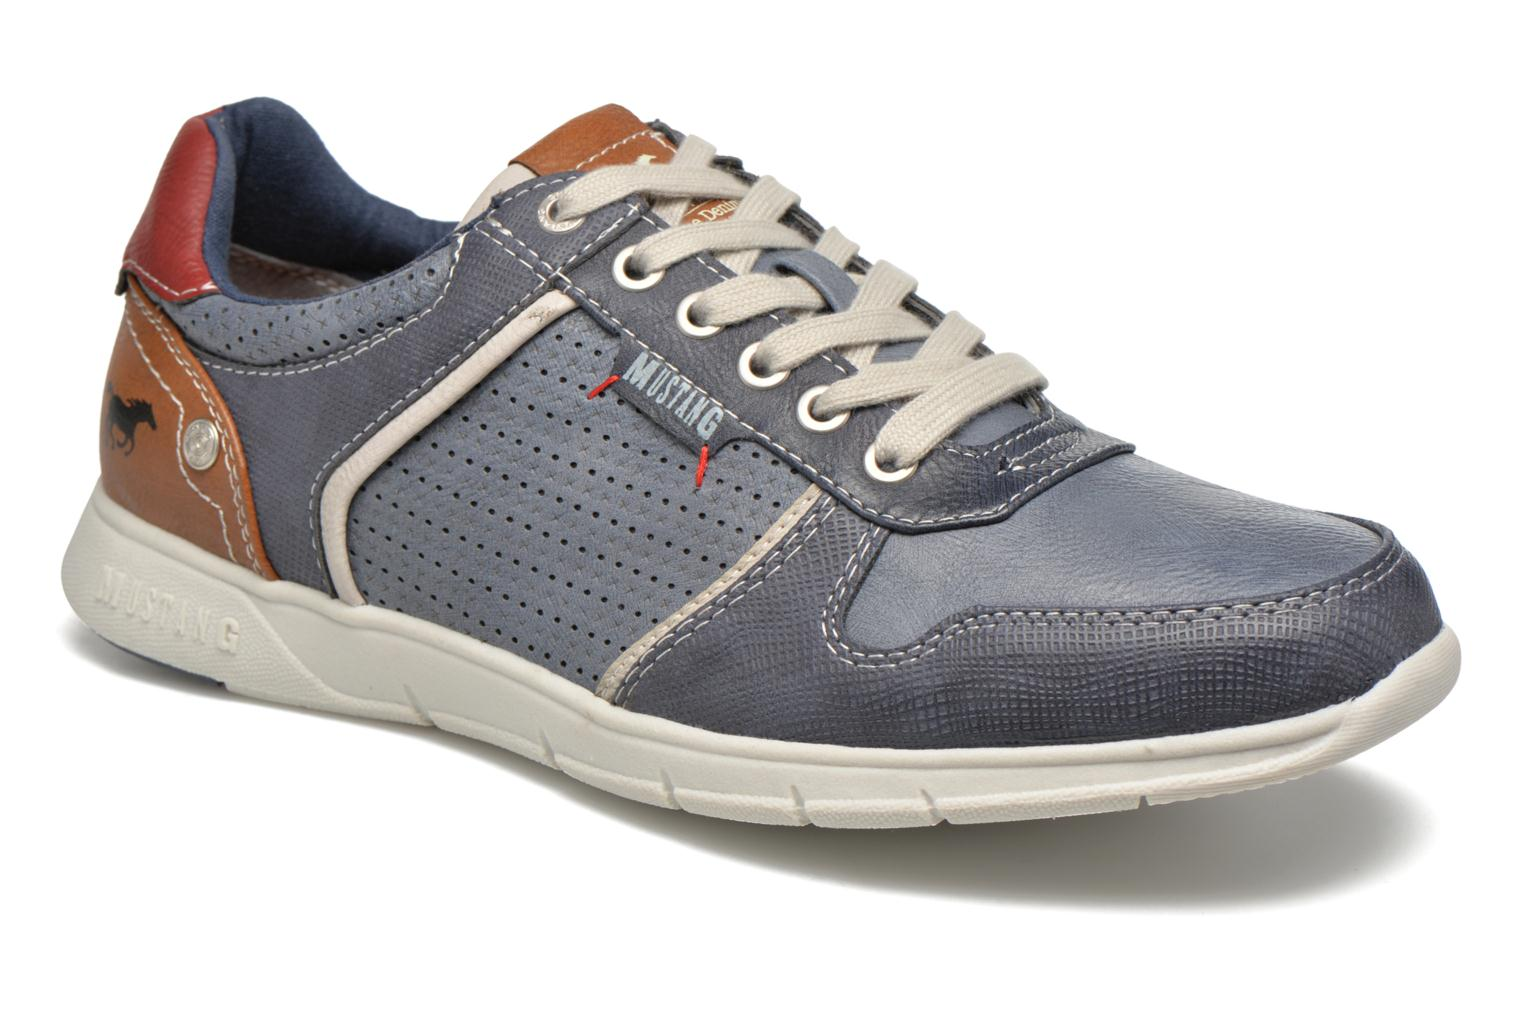 Sneakers Felix by Mustang shoes